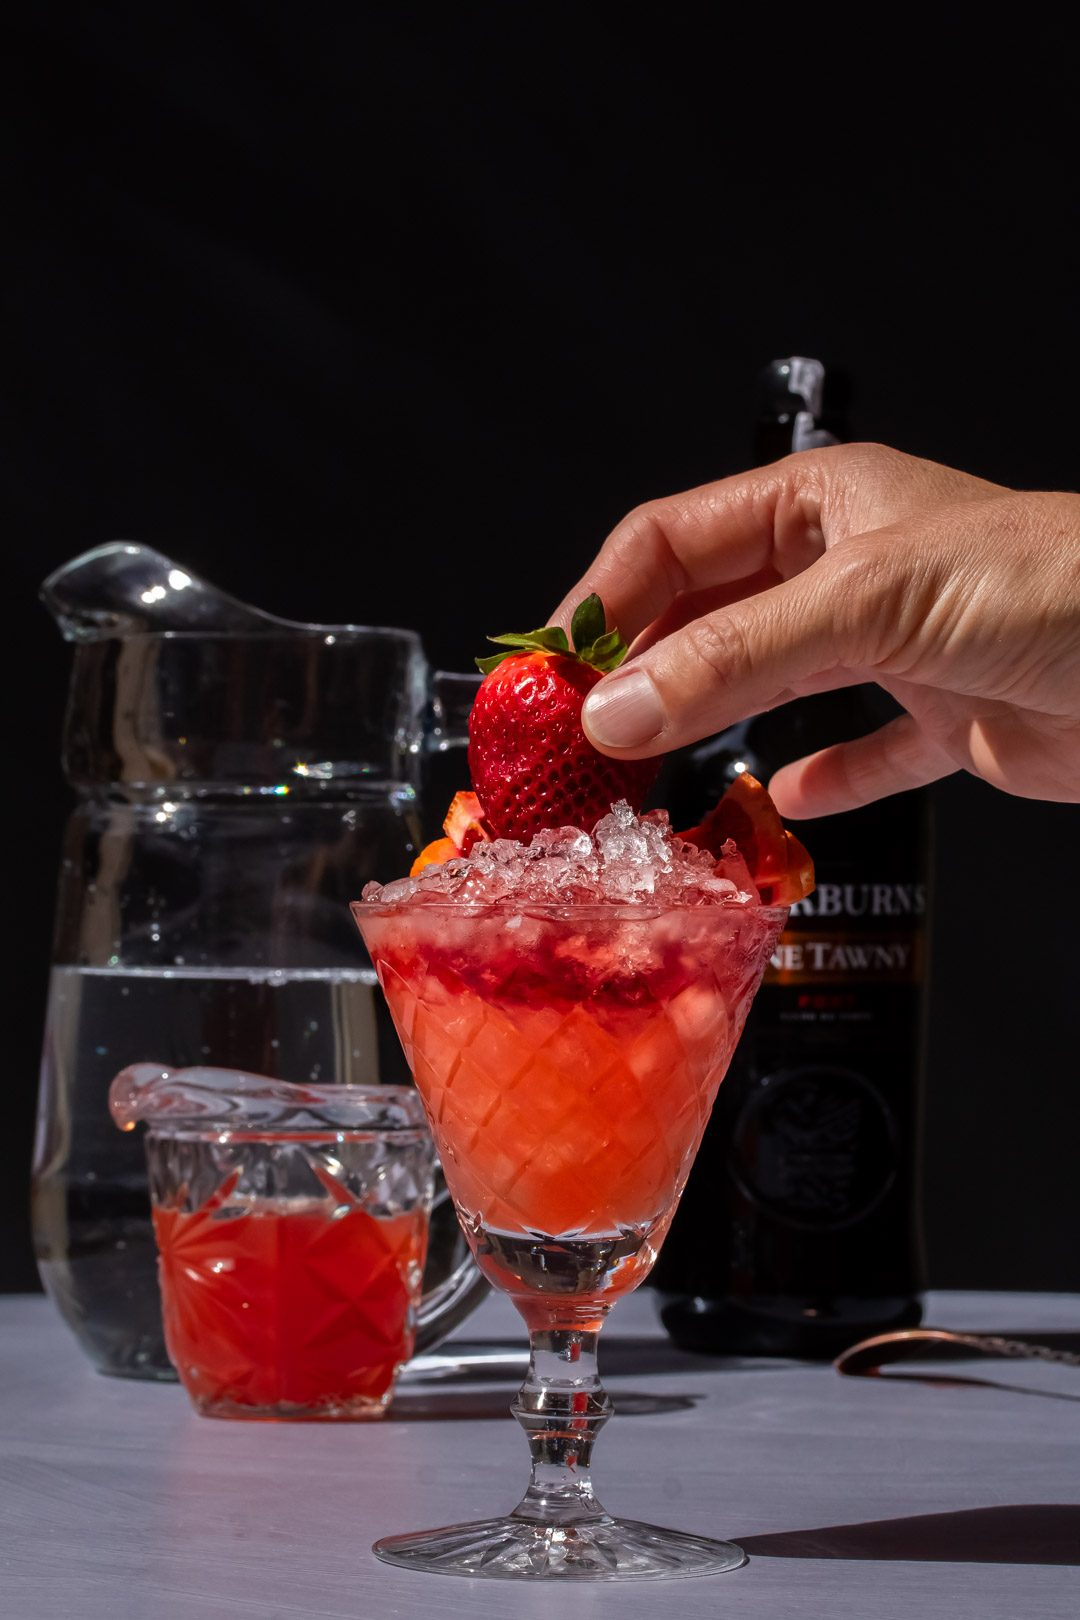 adding a fresh strawberry garnish to improved strawberry shrub